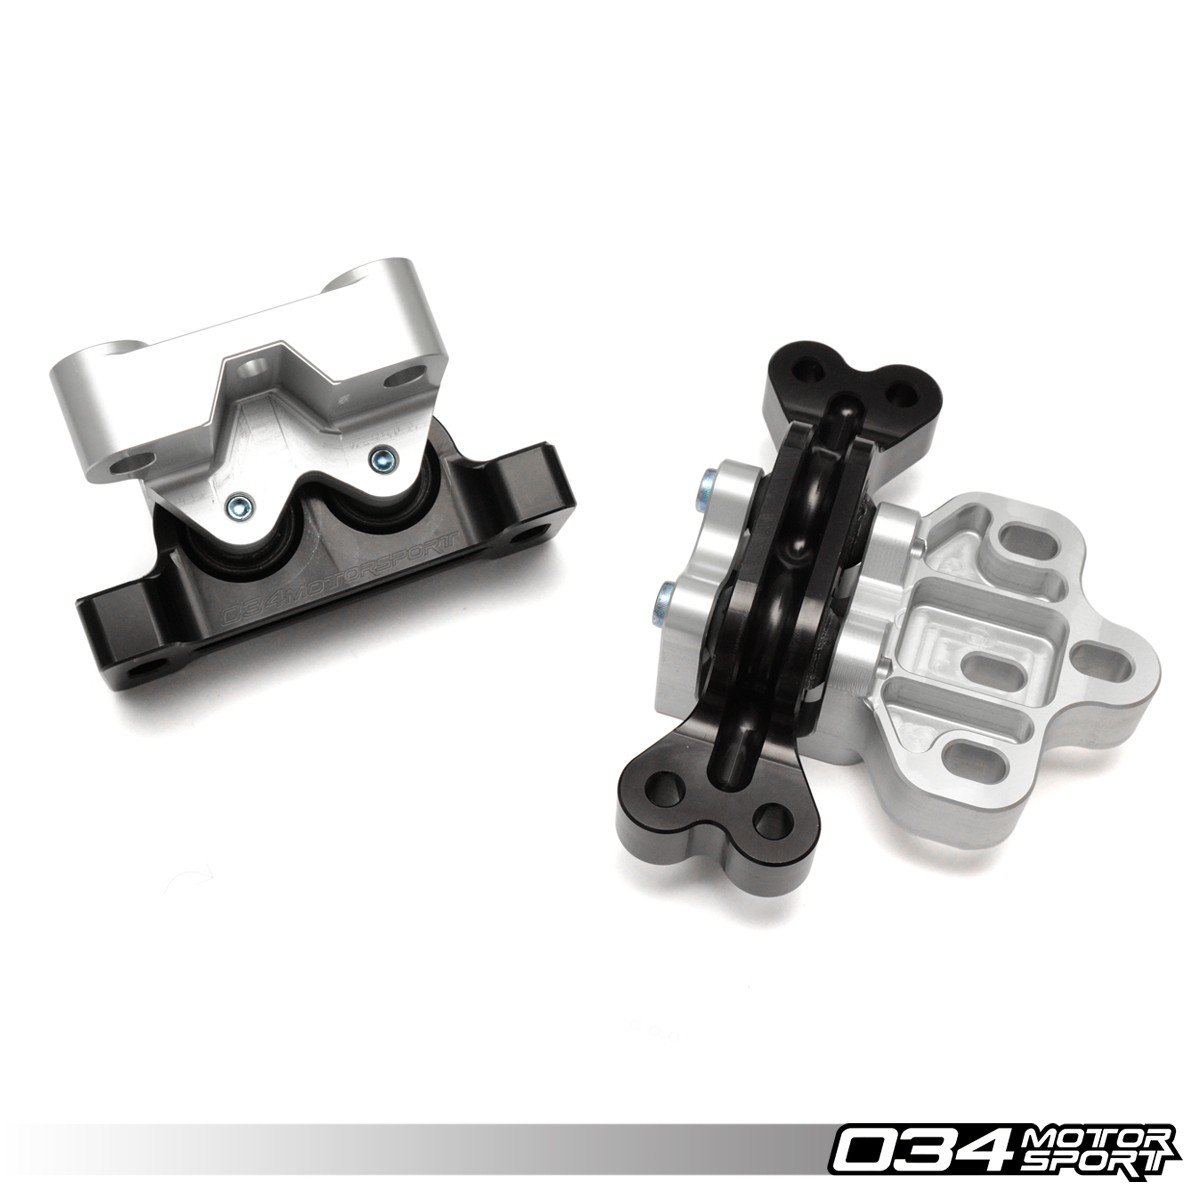 Motorsport Engine/Transmission Mount Pair, 8J/8P Audi A3/TT 3.2L & MkV Volkswagen R32, Billet Aluminum